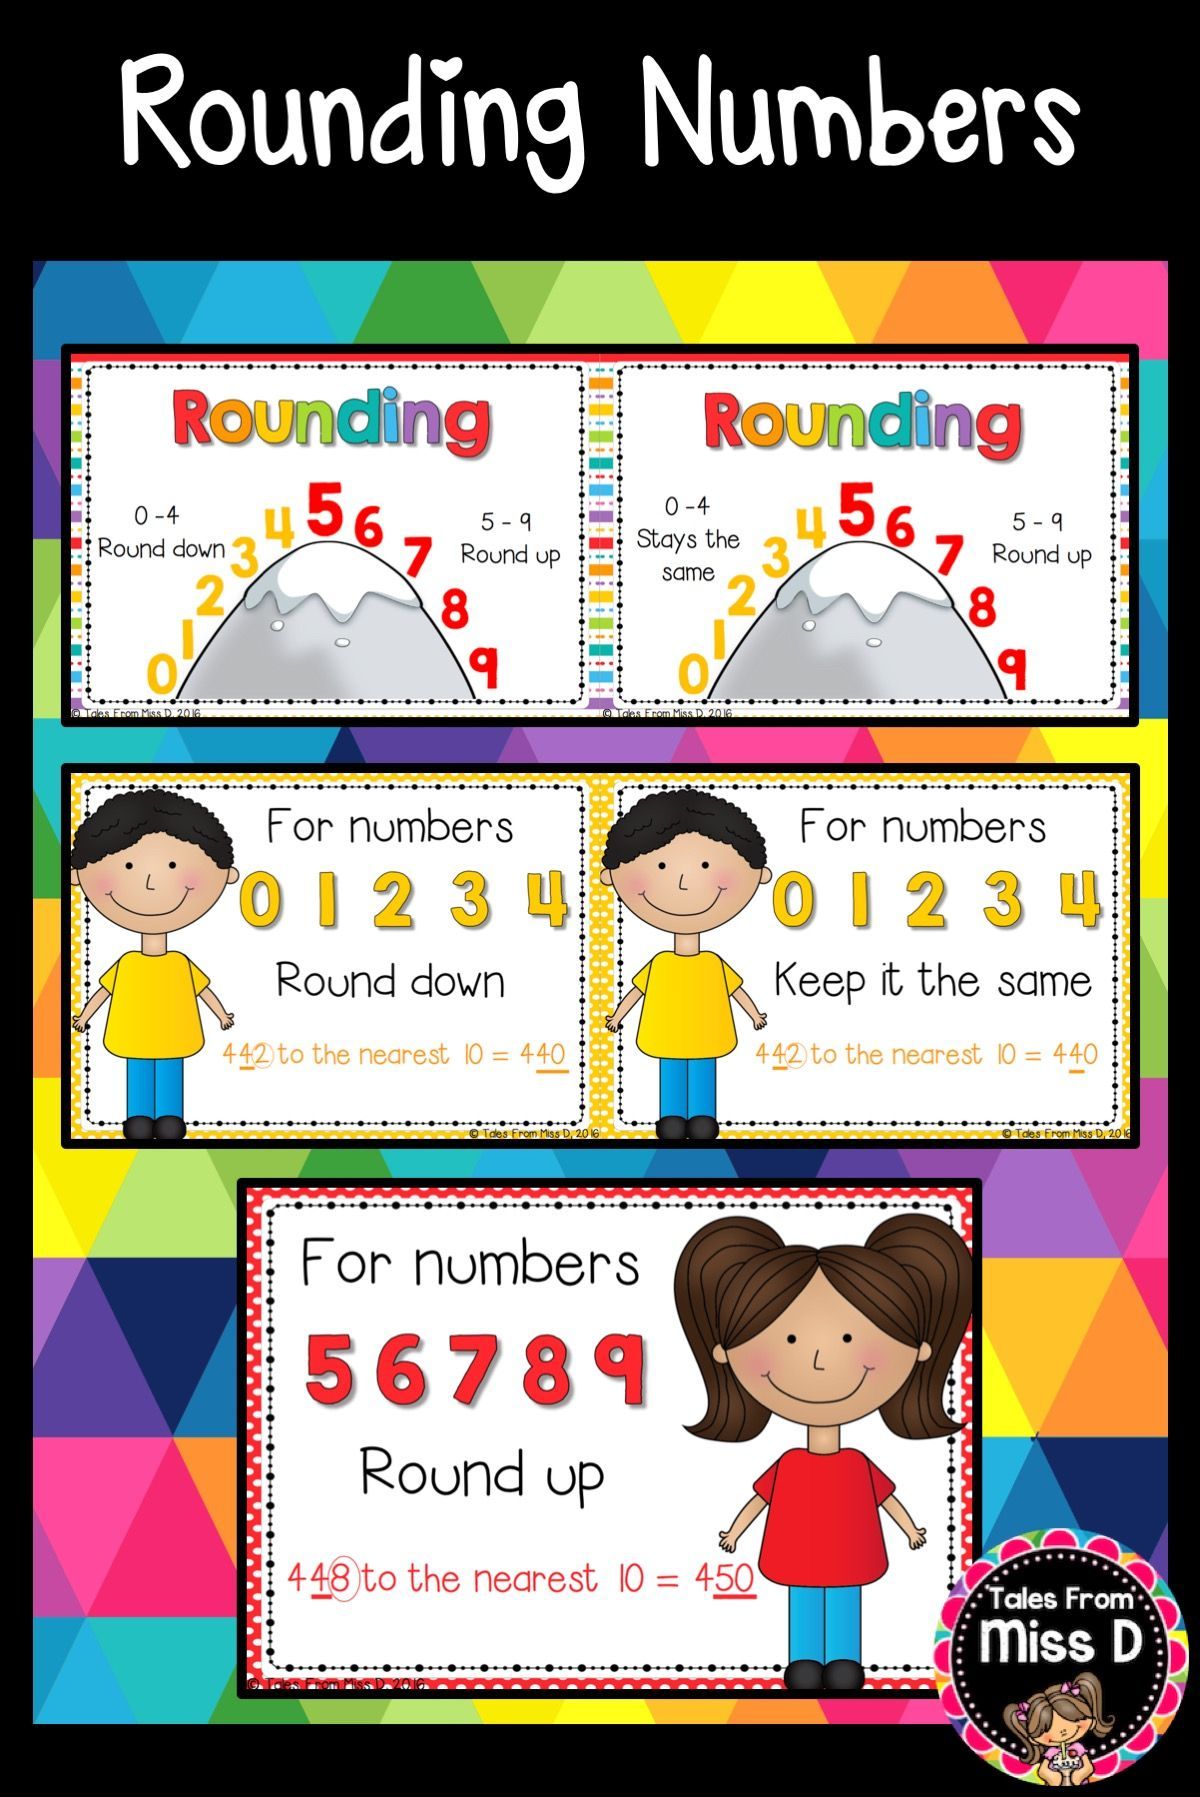 rounding numbers posters | math | pinterest | rounding numbers, math